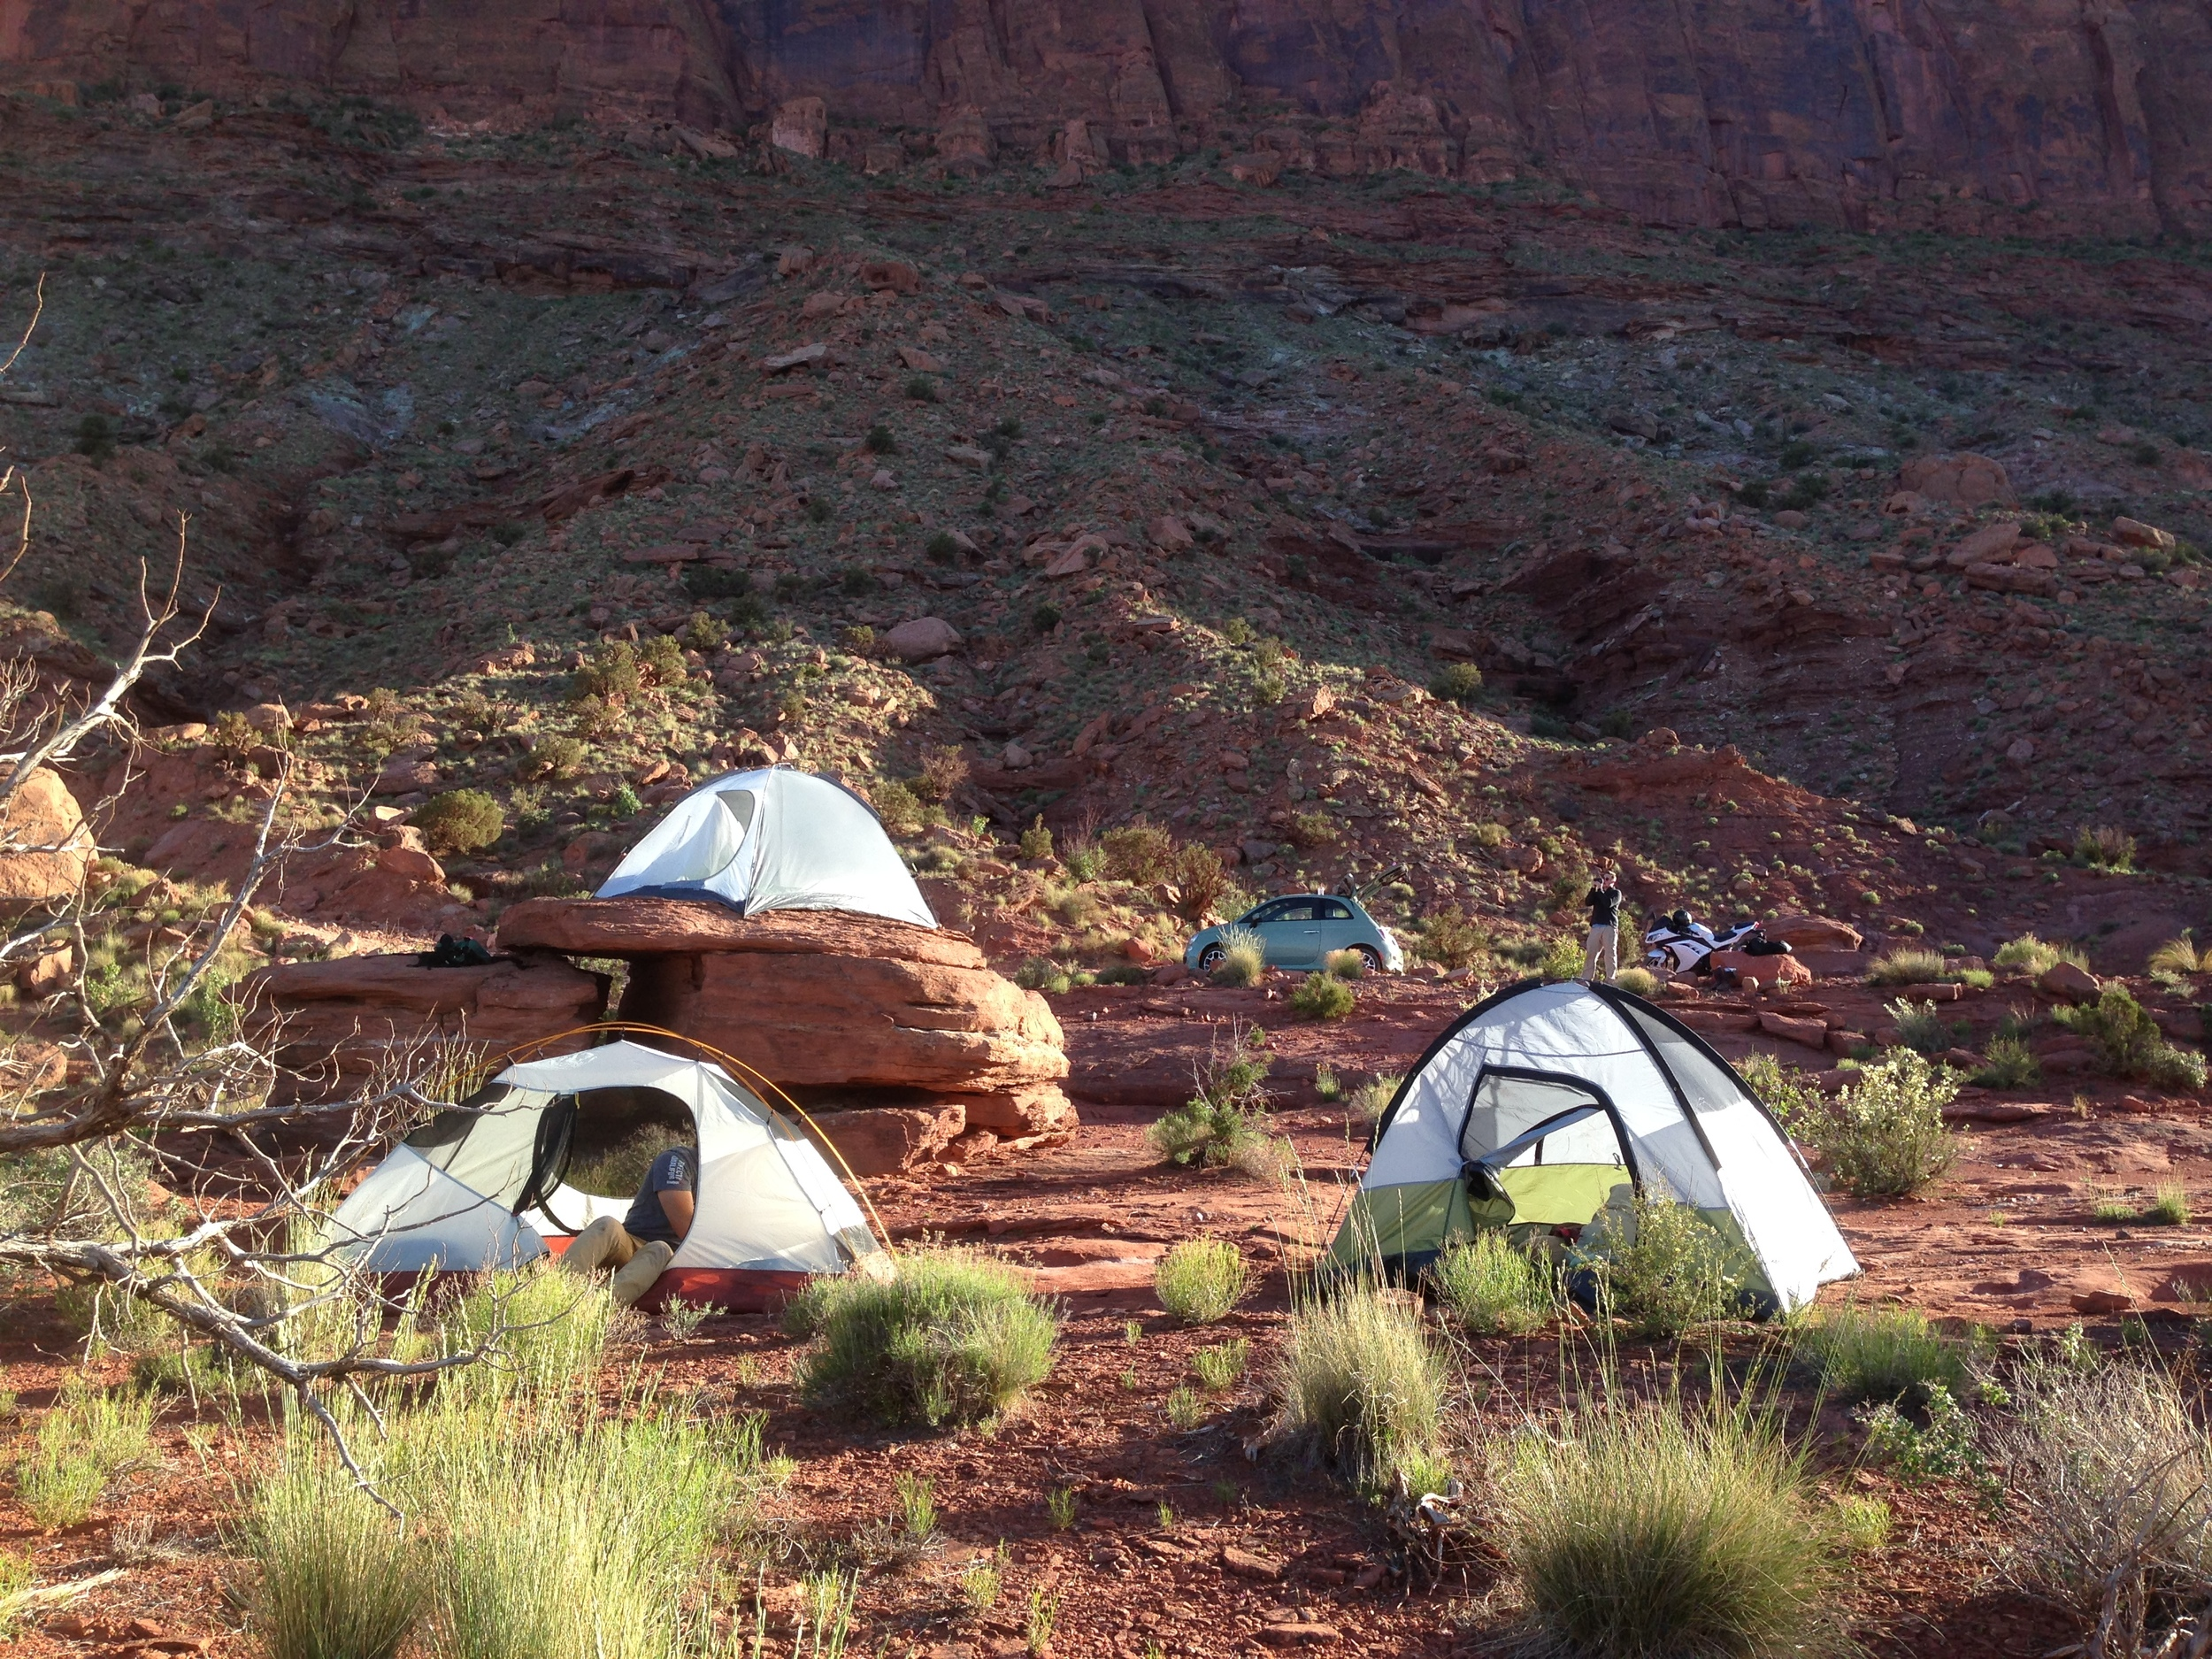 Primitive camping site a couple miles from Arches National Park in Moab, UT